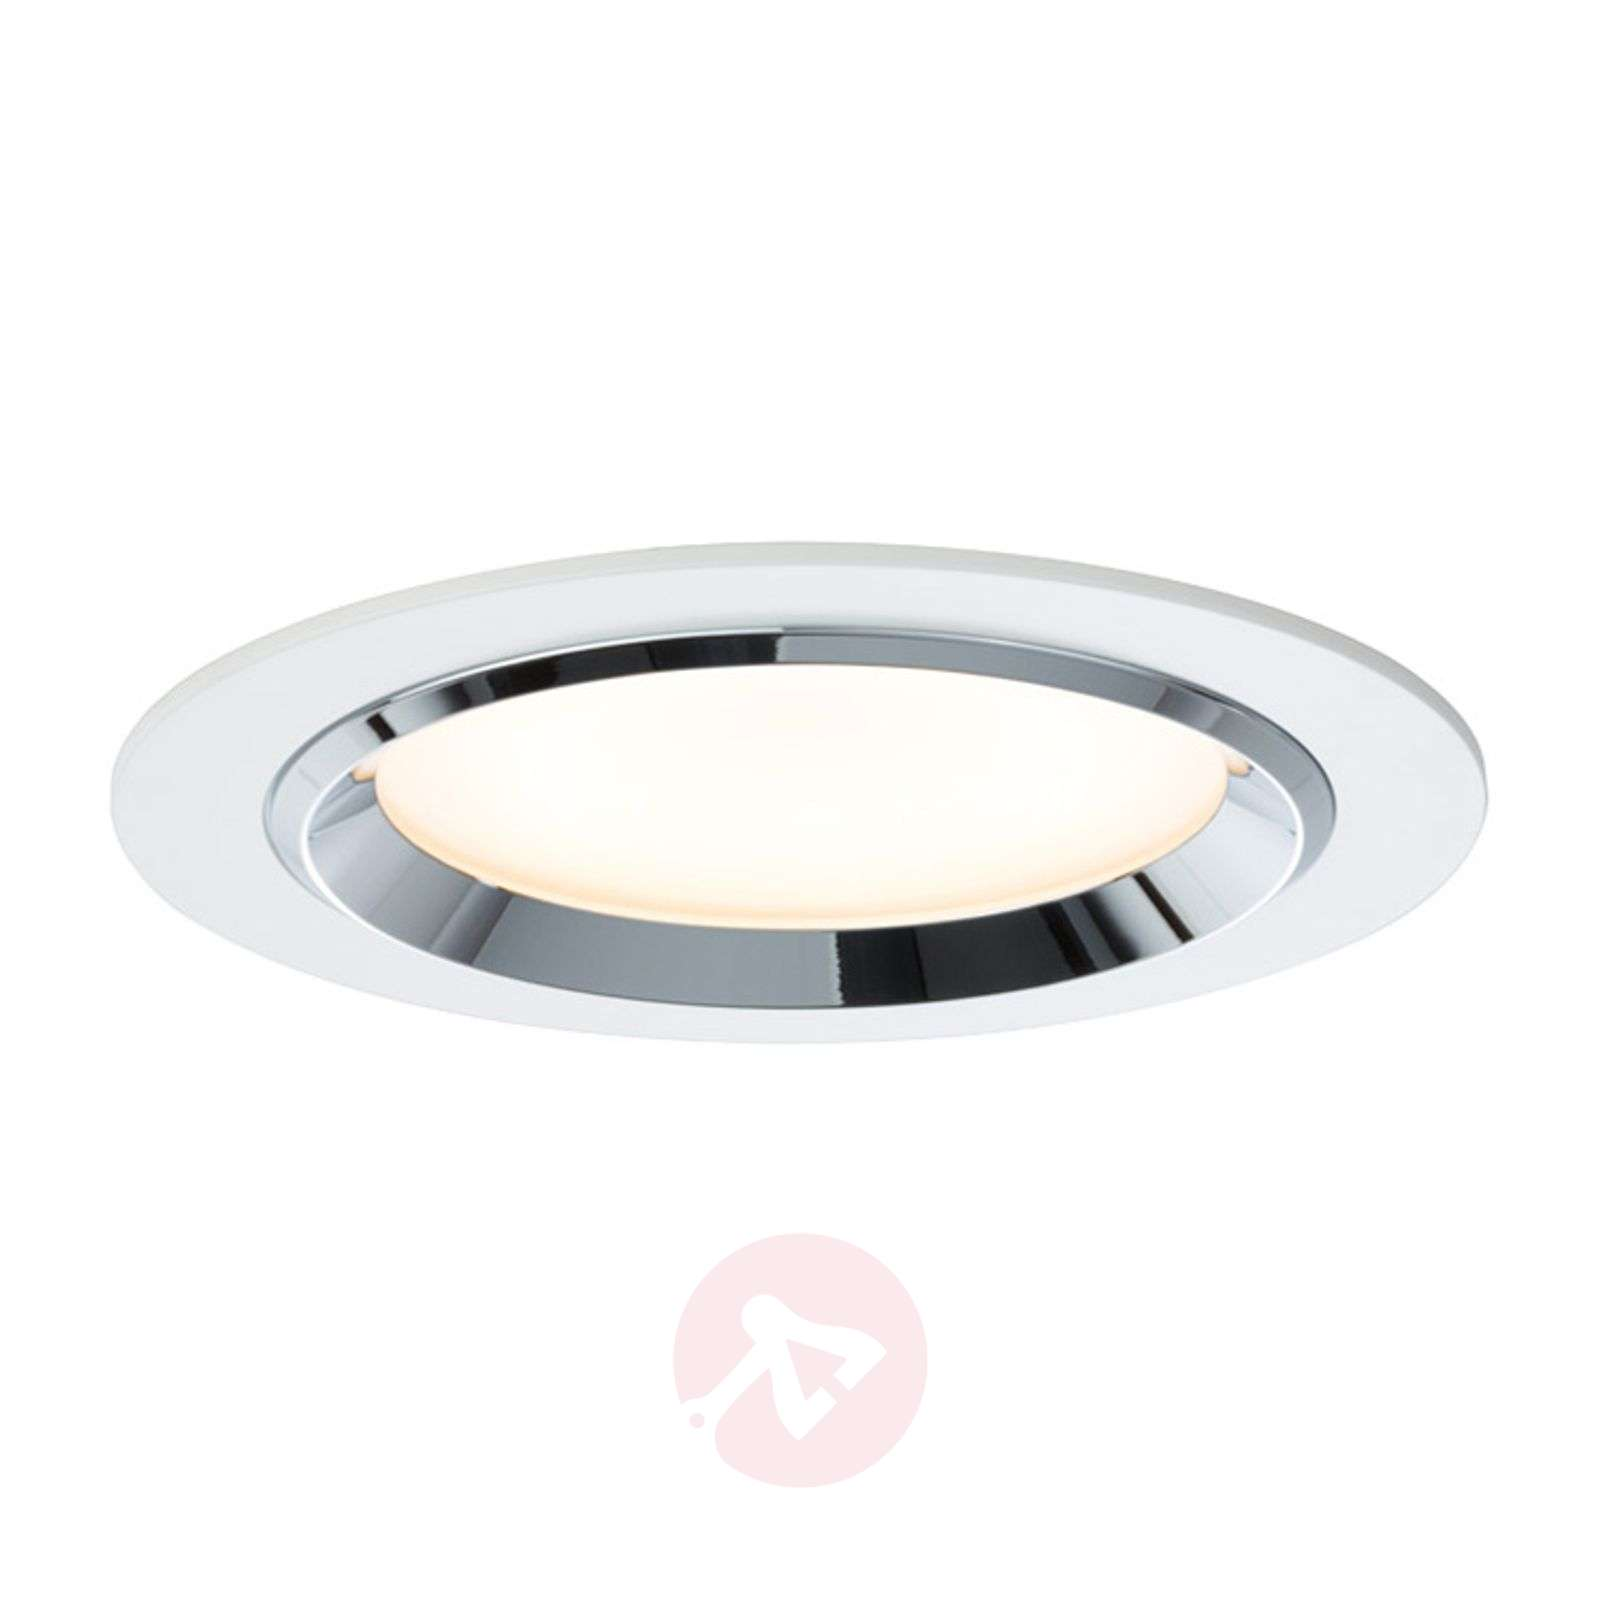 Set de 3 spots LED encastrables Premium Line Dot-7600694-01